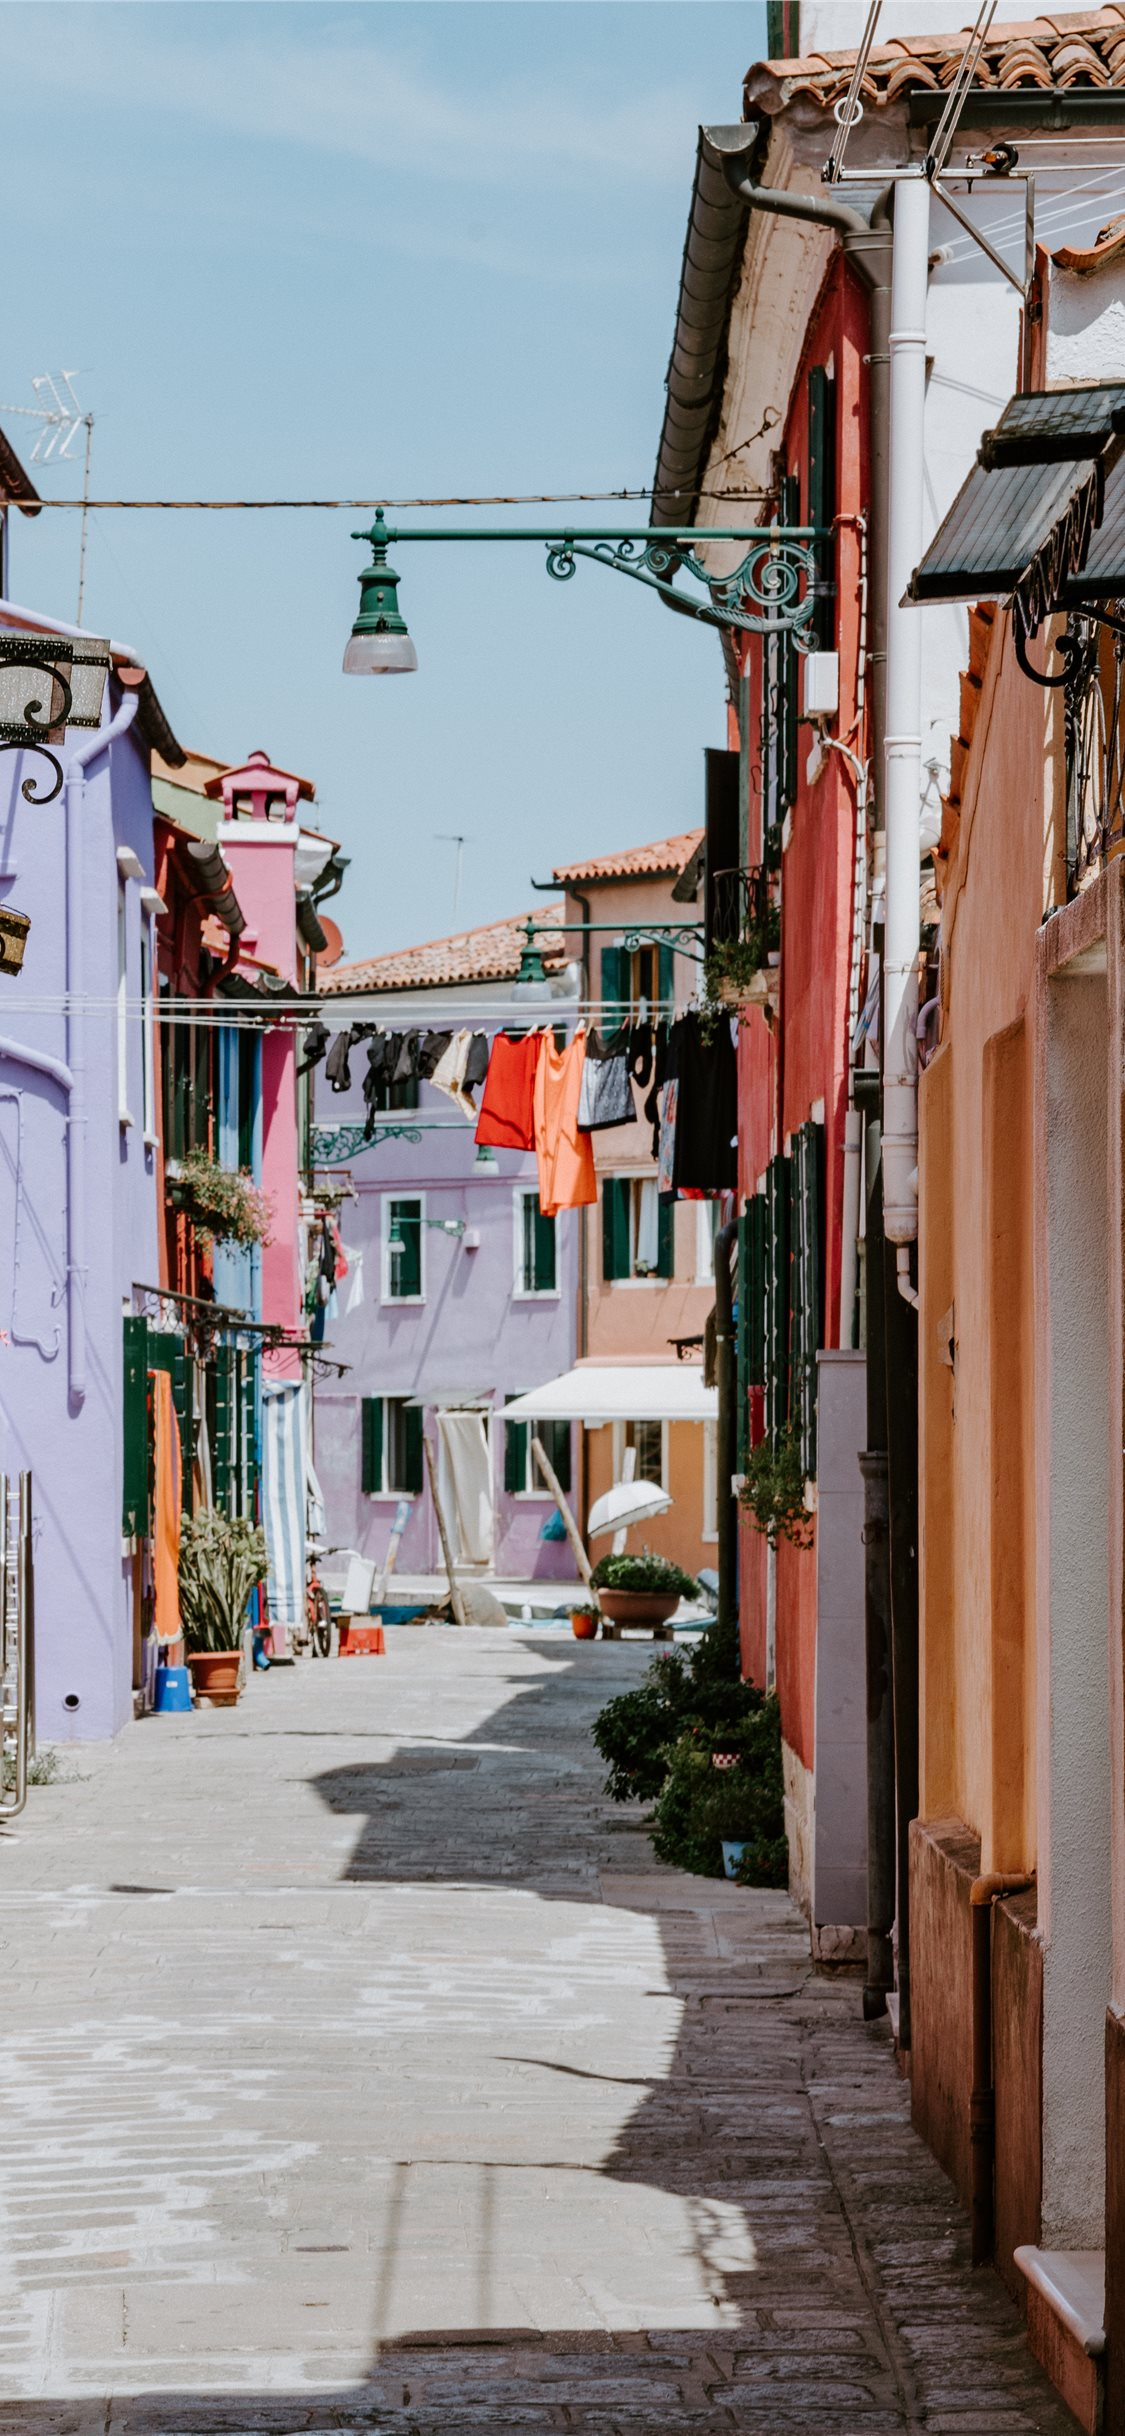 Laundry Drying In Alley Colourful Burano Iphone Wallpapers